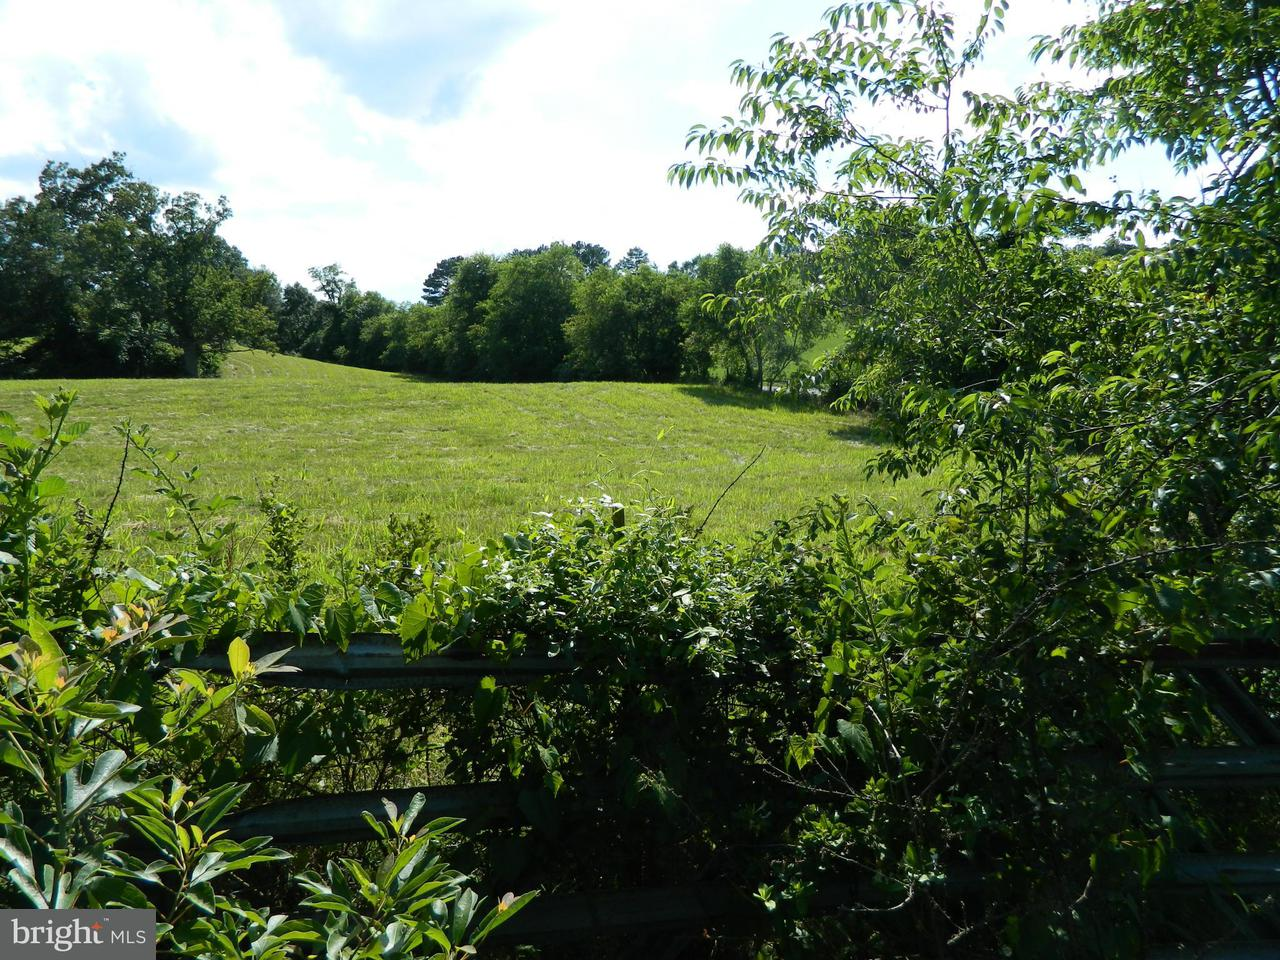 Land for Sale at 15491 Off Oakland Road 15491 Off Oakland Road Reva, Virginia 22735 United States